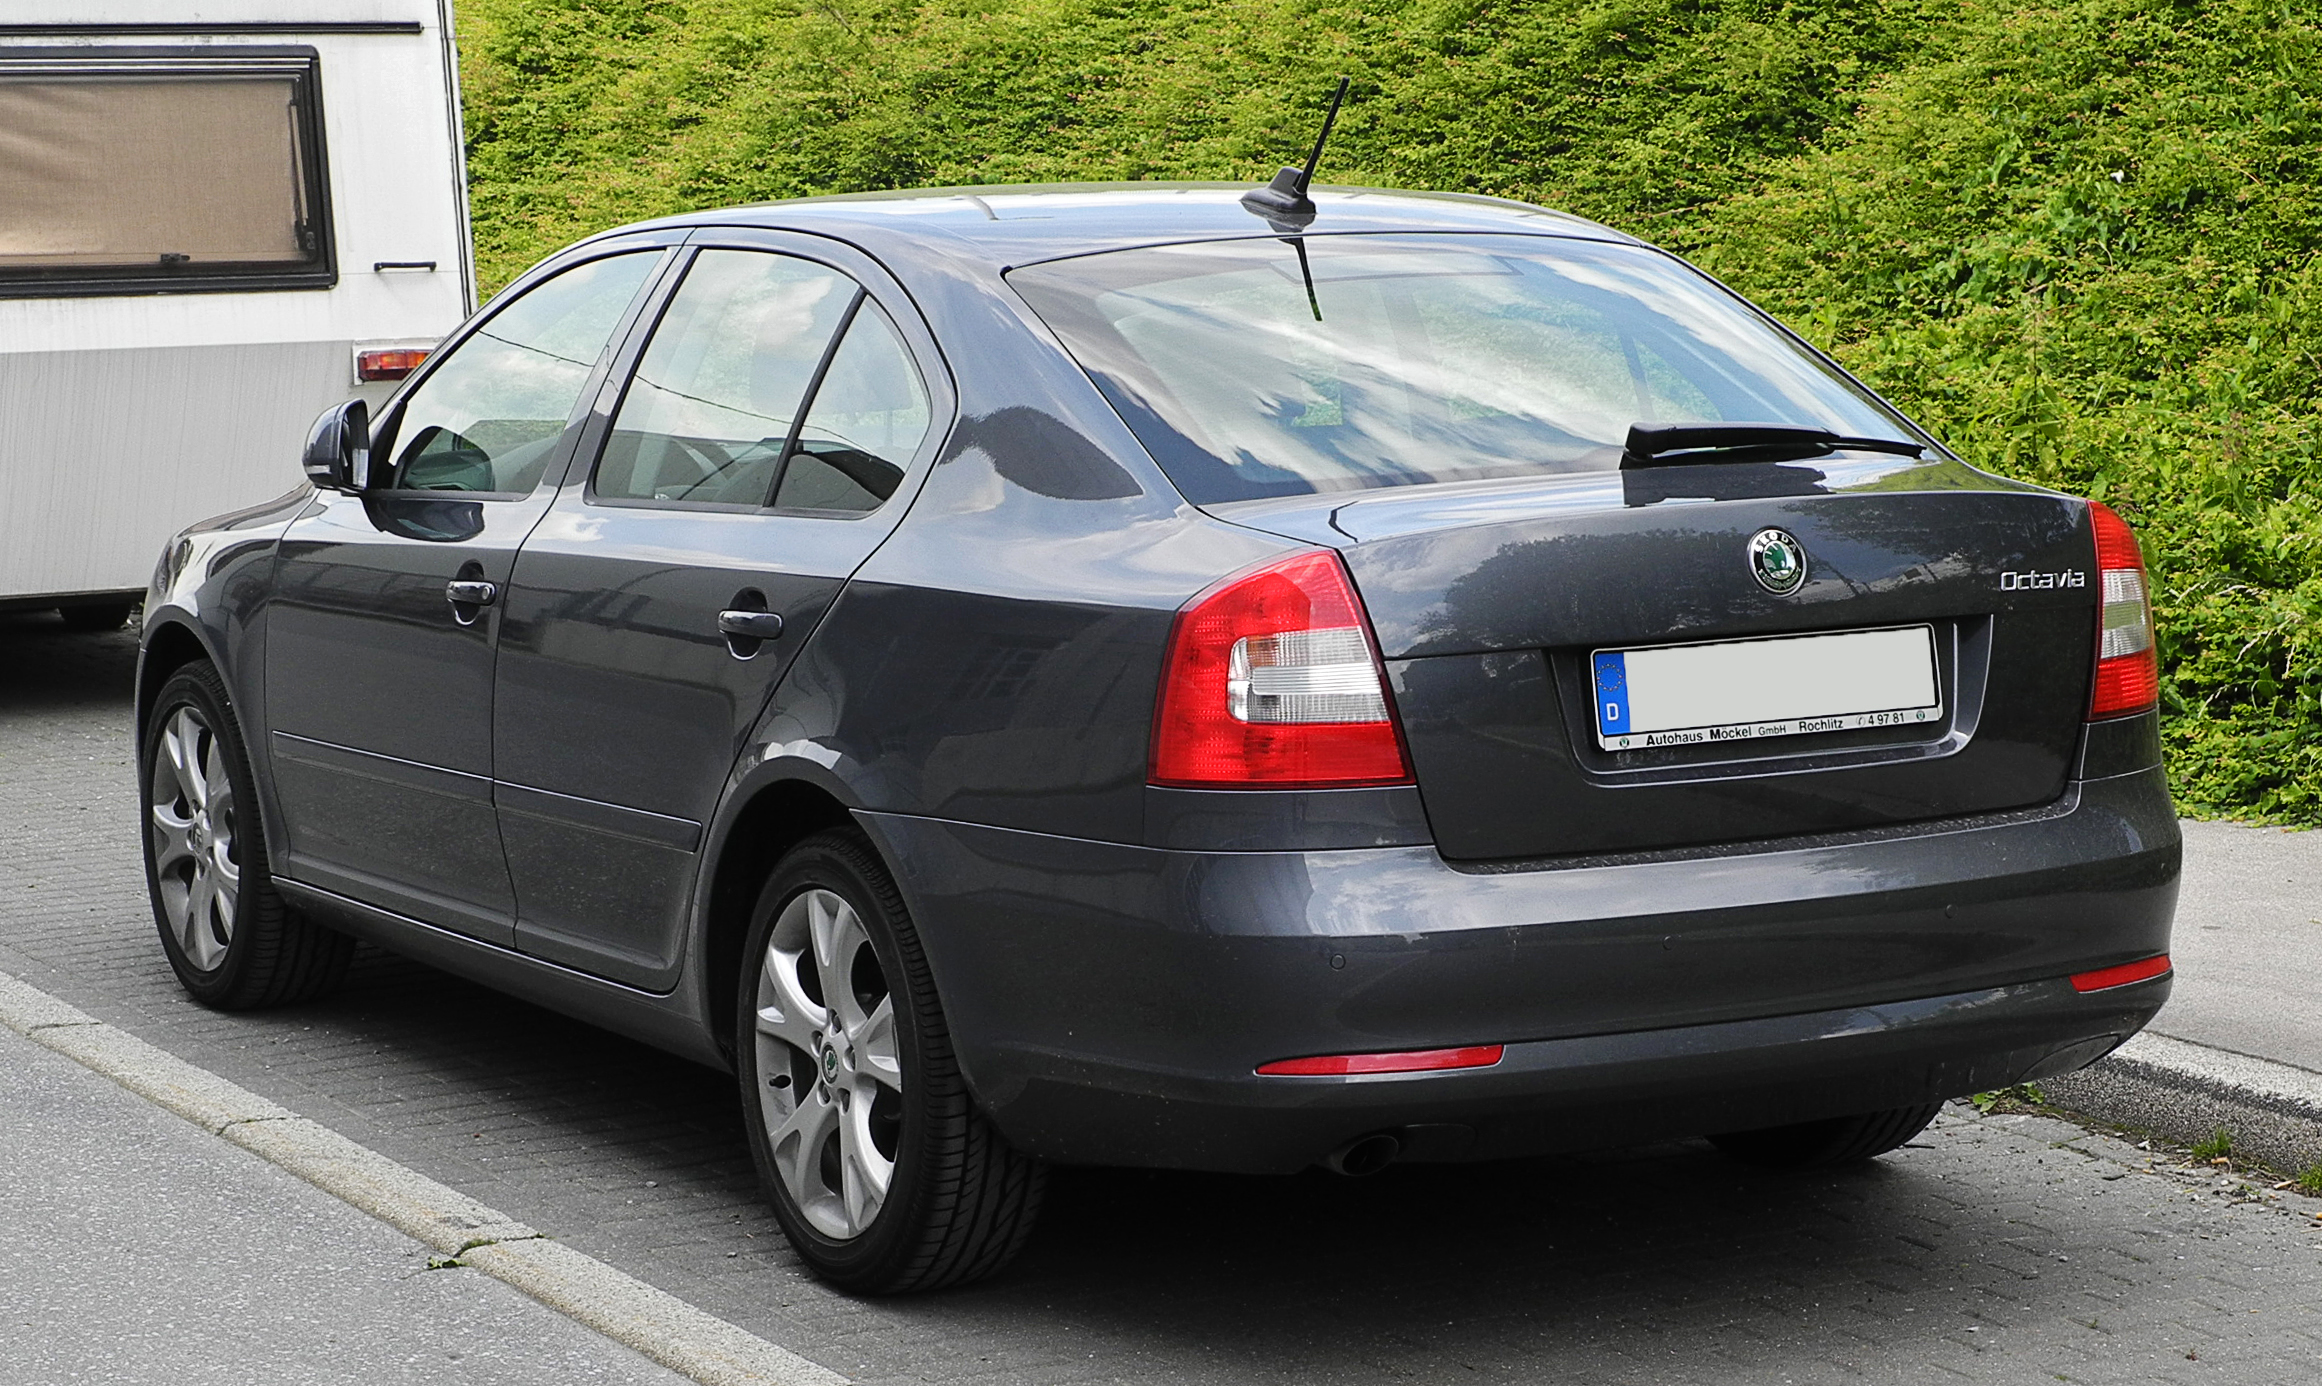 file skoda octavia ii facelift heckansicht 12 juni 2011 w wikimedia commons. Black Bedroom Furniture Sets. Home Design Ideas